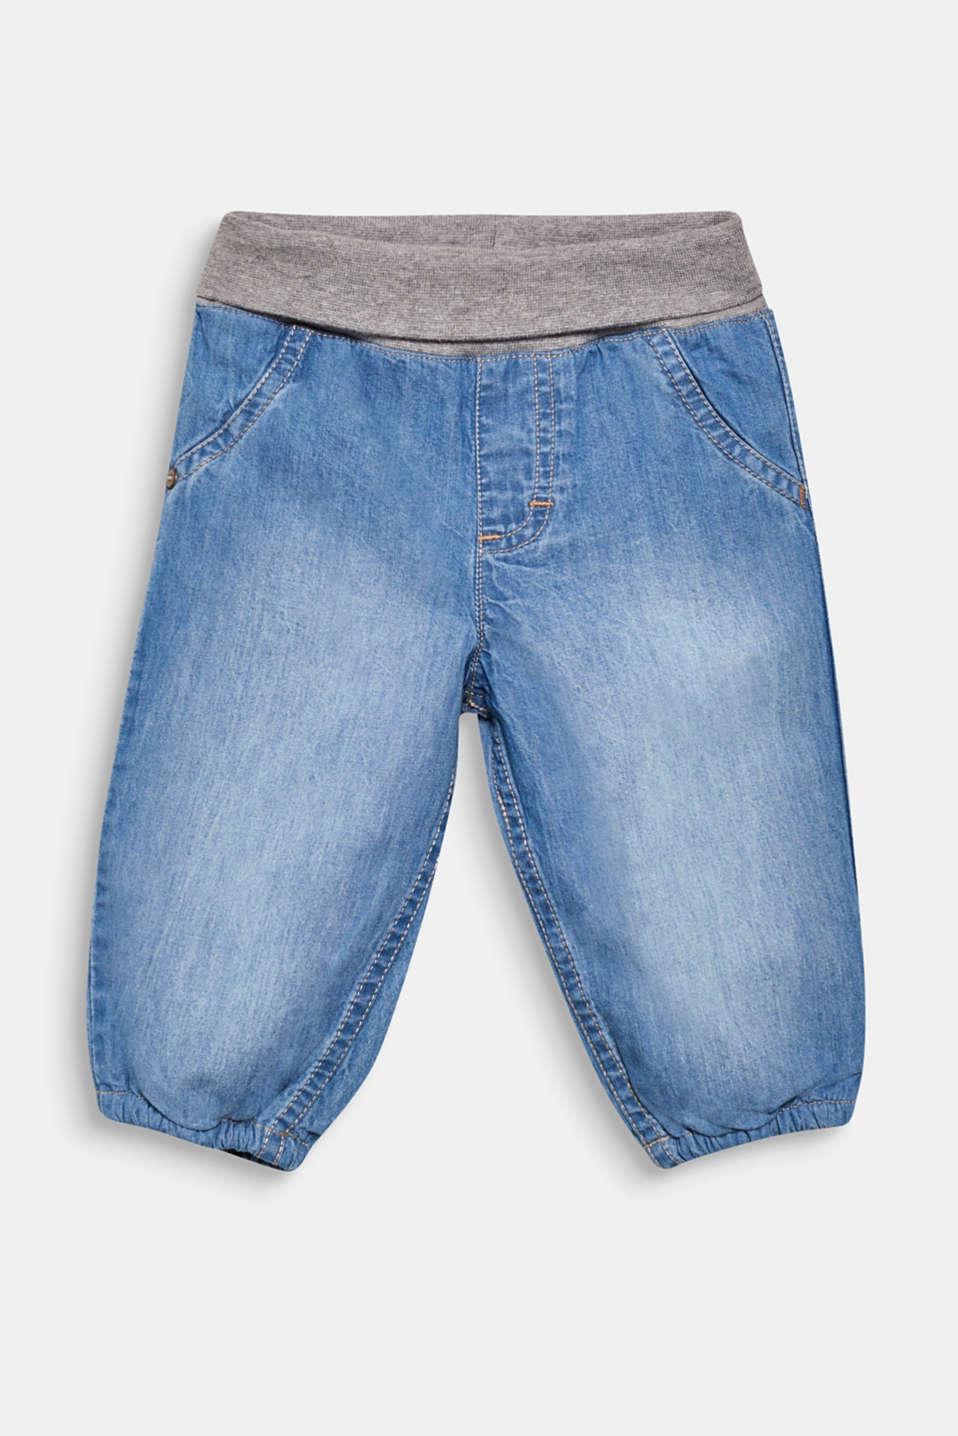 Esprit - Jeans with a jersey turn-down waistband